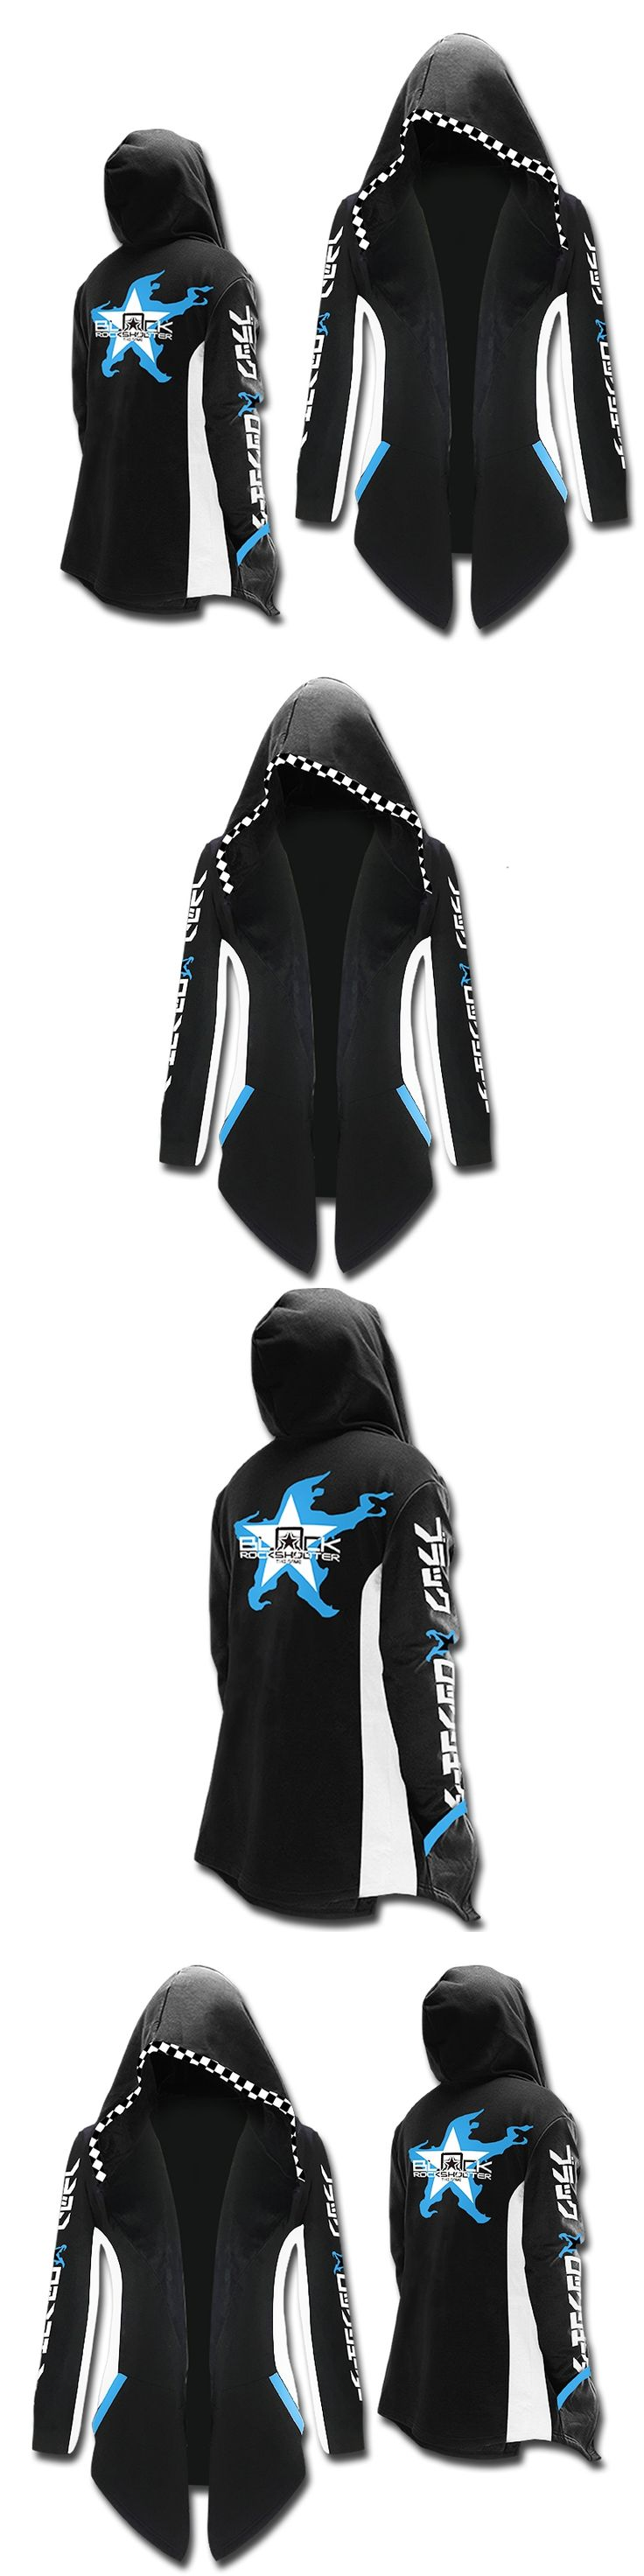 Mens Fashion Winter Autumn BLACK ROCK SHOOTER Hoody Black Color BRS BLACK ROCK SHOOTER Pullover Hoodies For Adult CM341